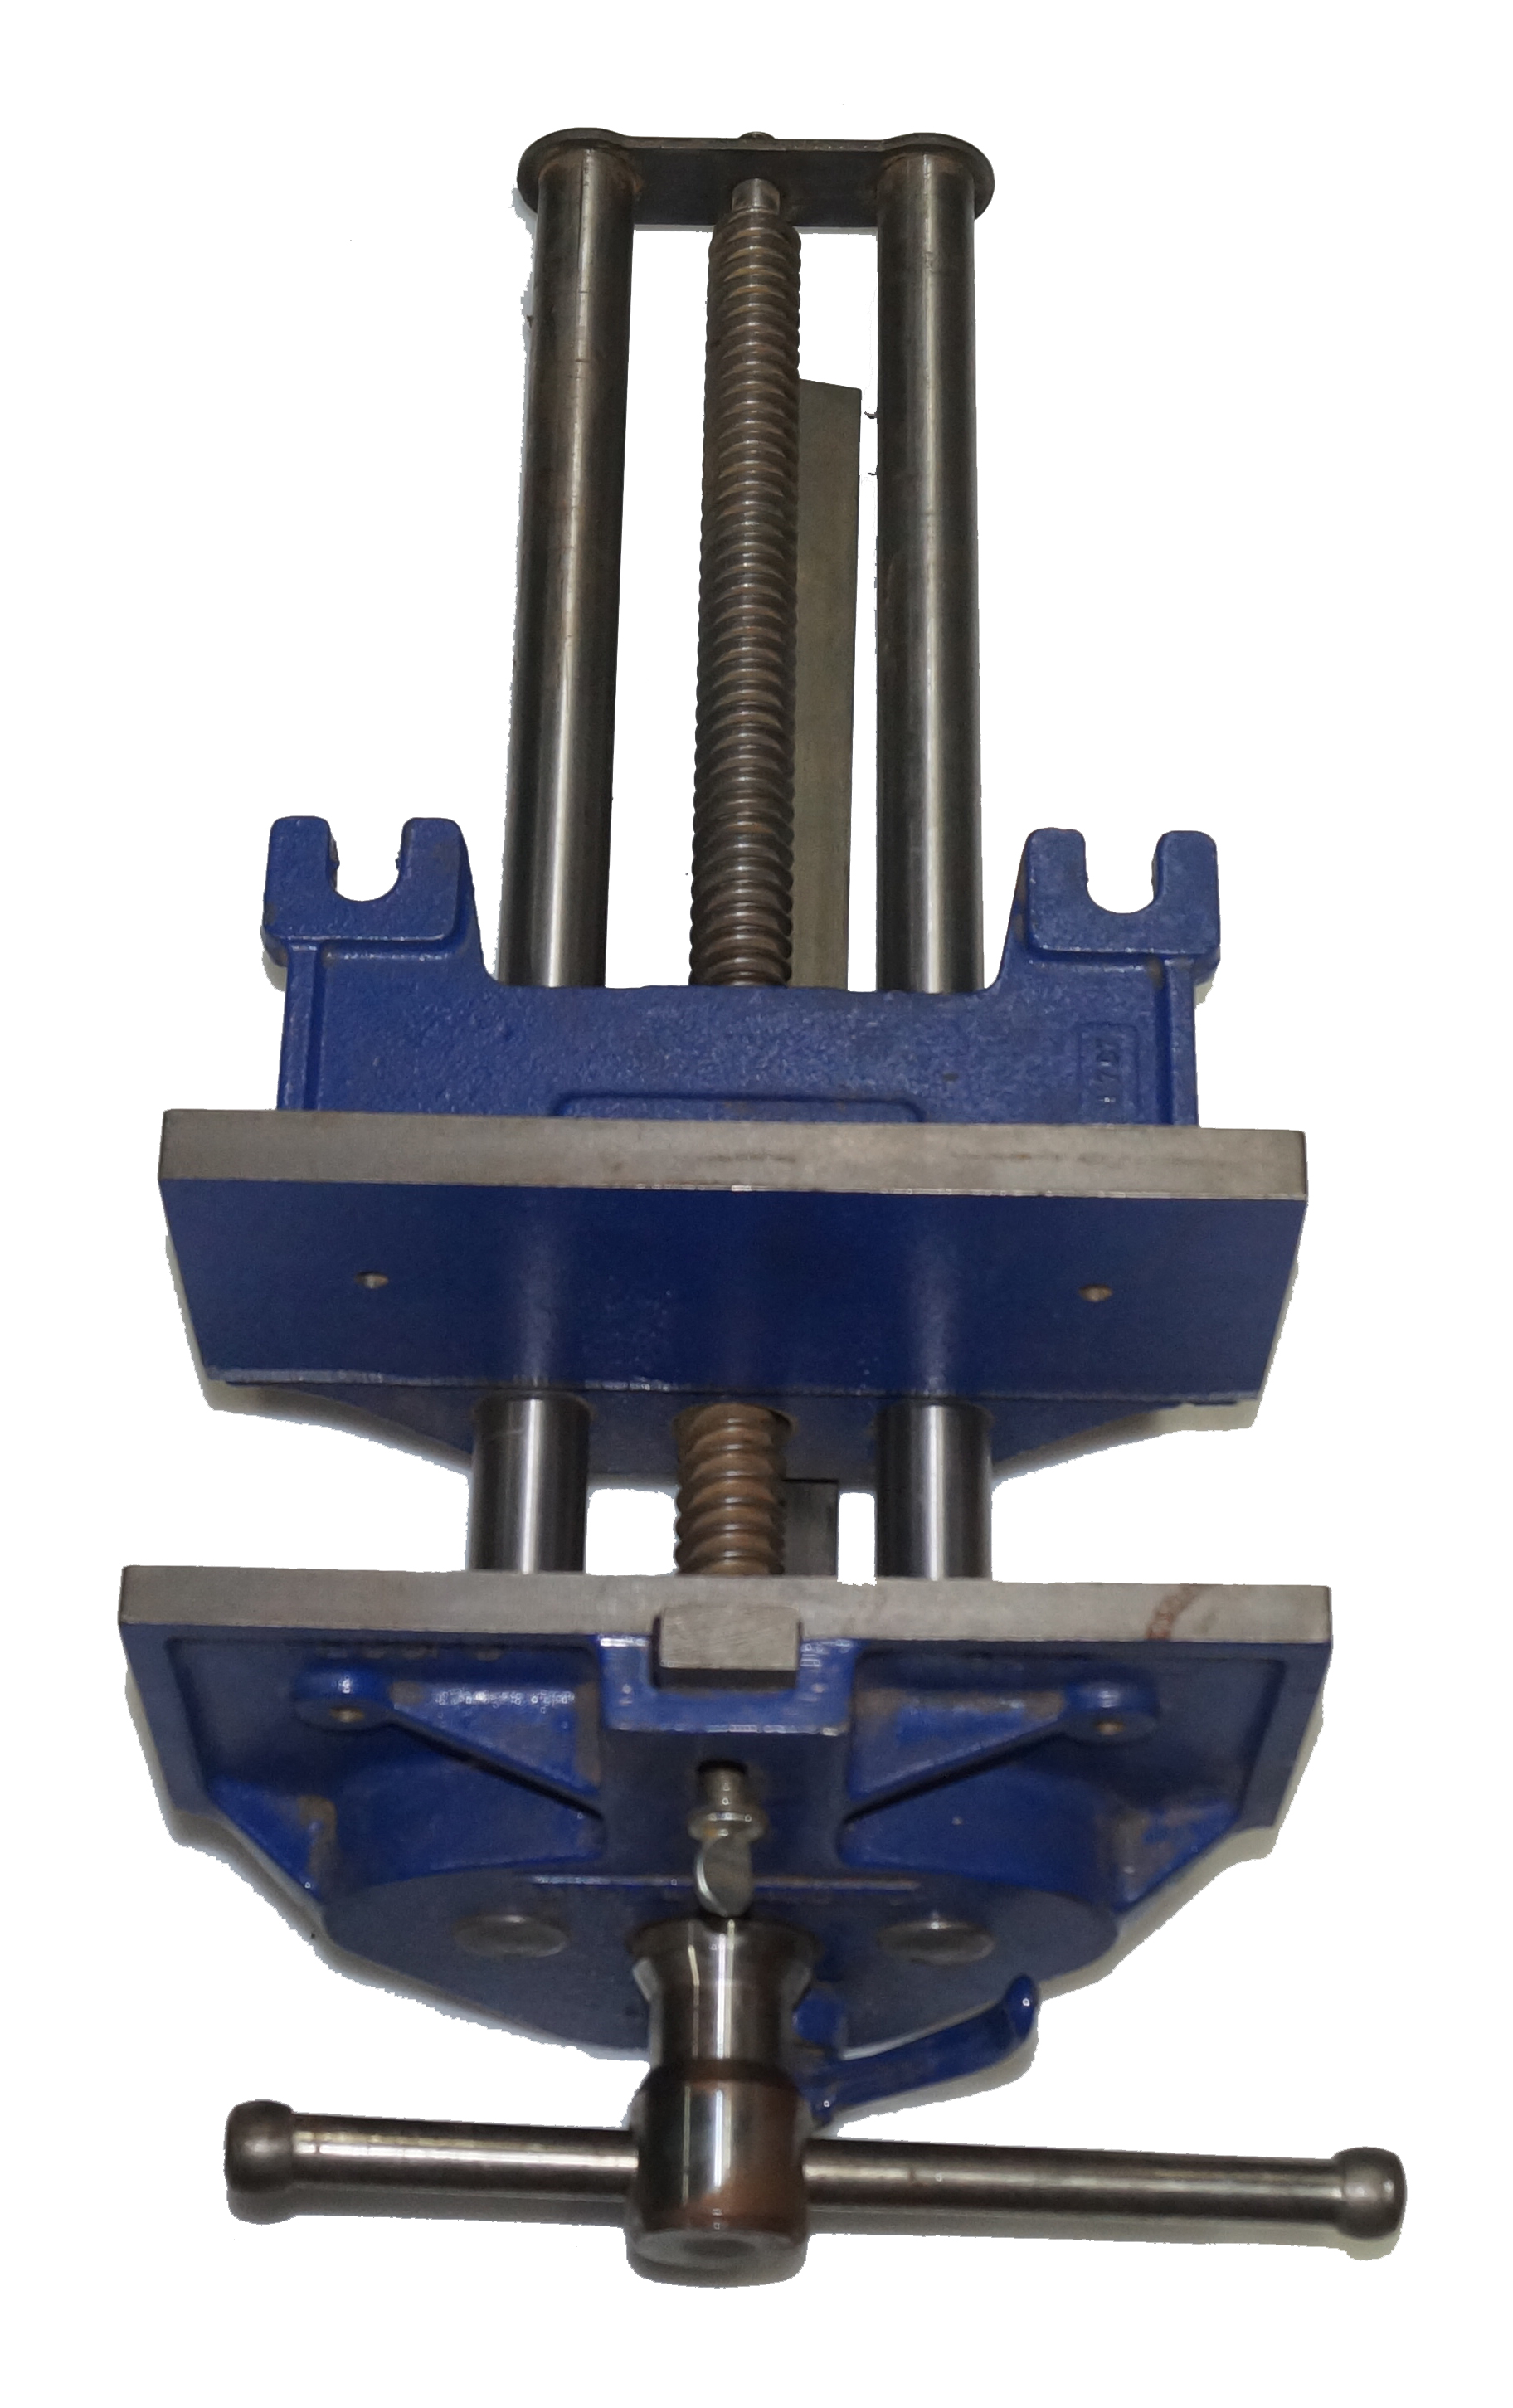 Record Woodworking Vise 52 1/2 Quick-Release England